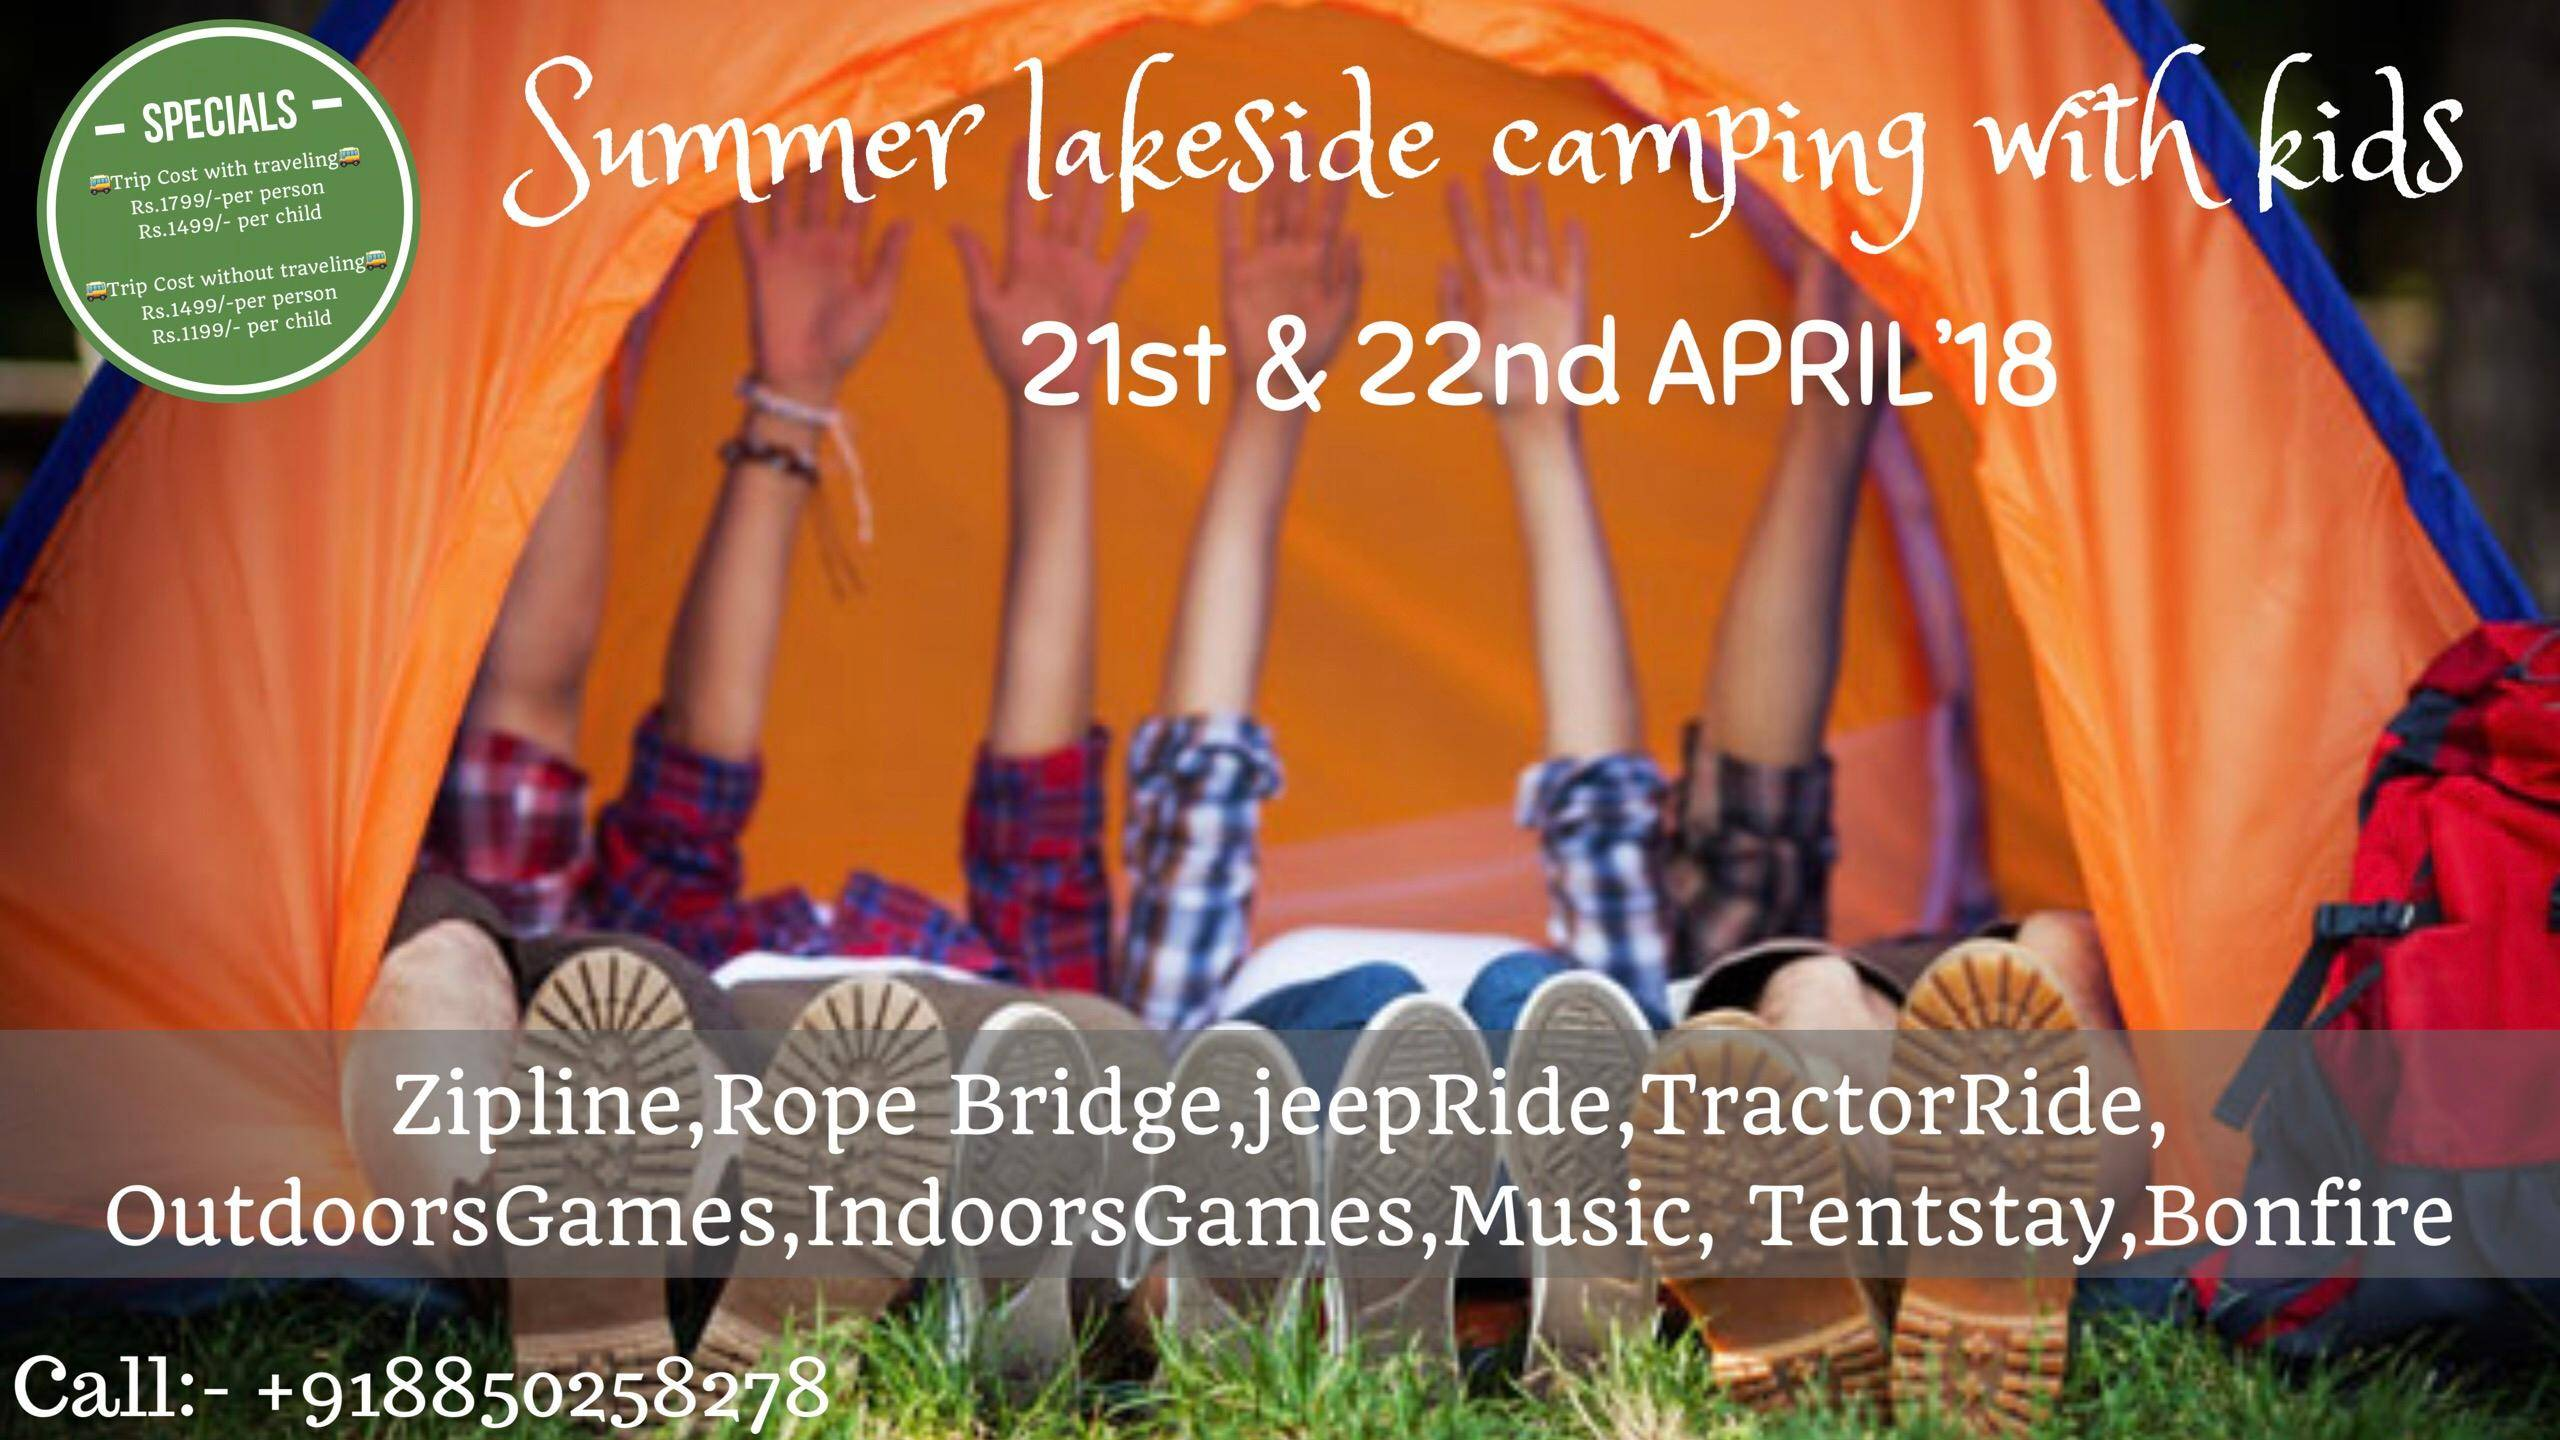 Summer camp lakeside camping with kids